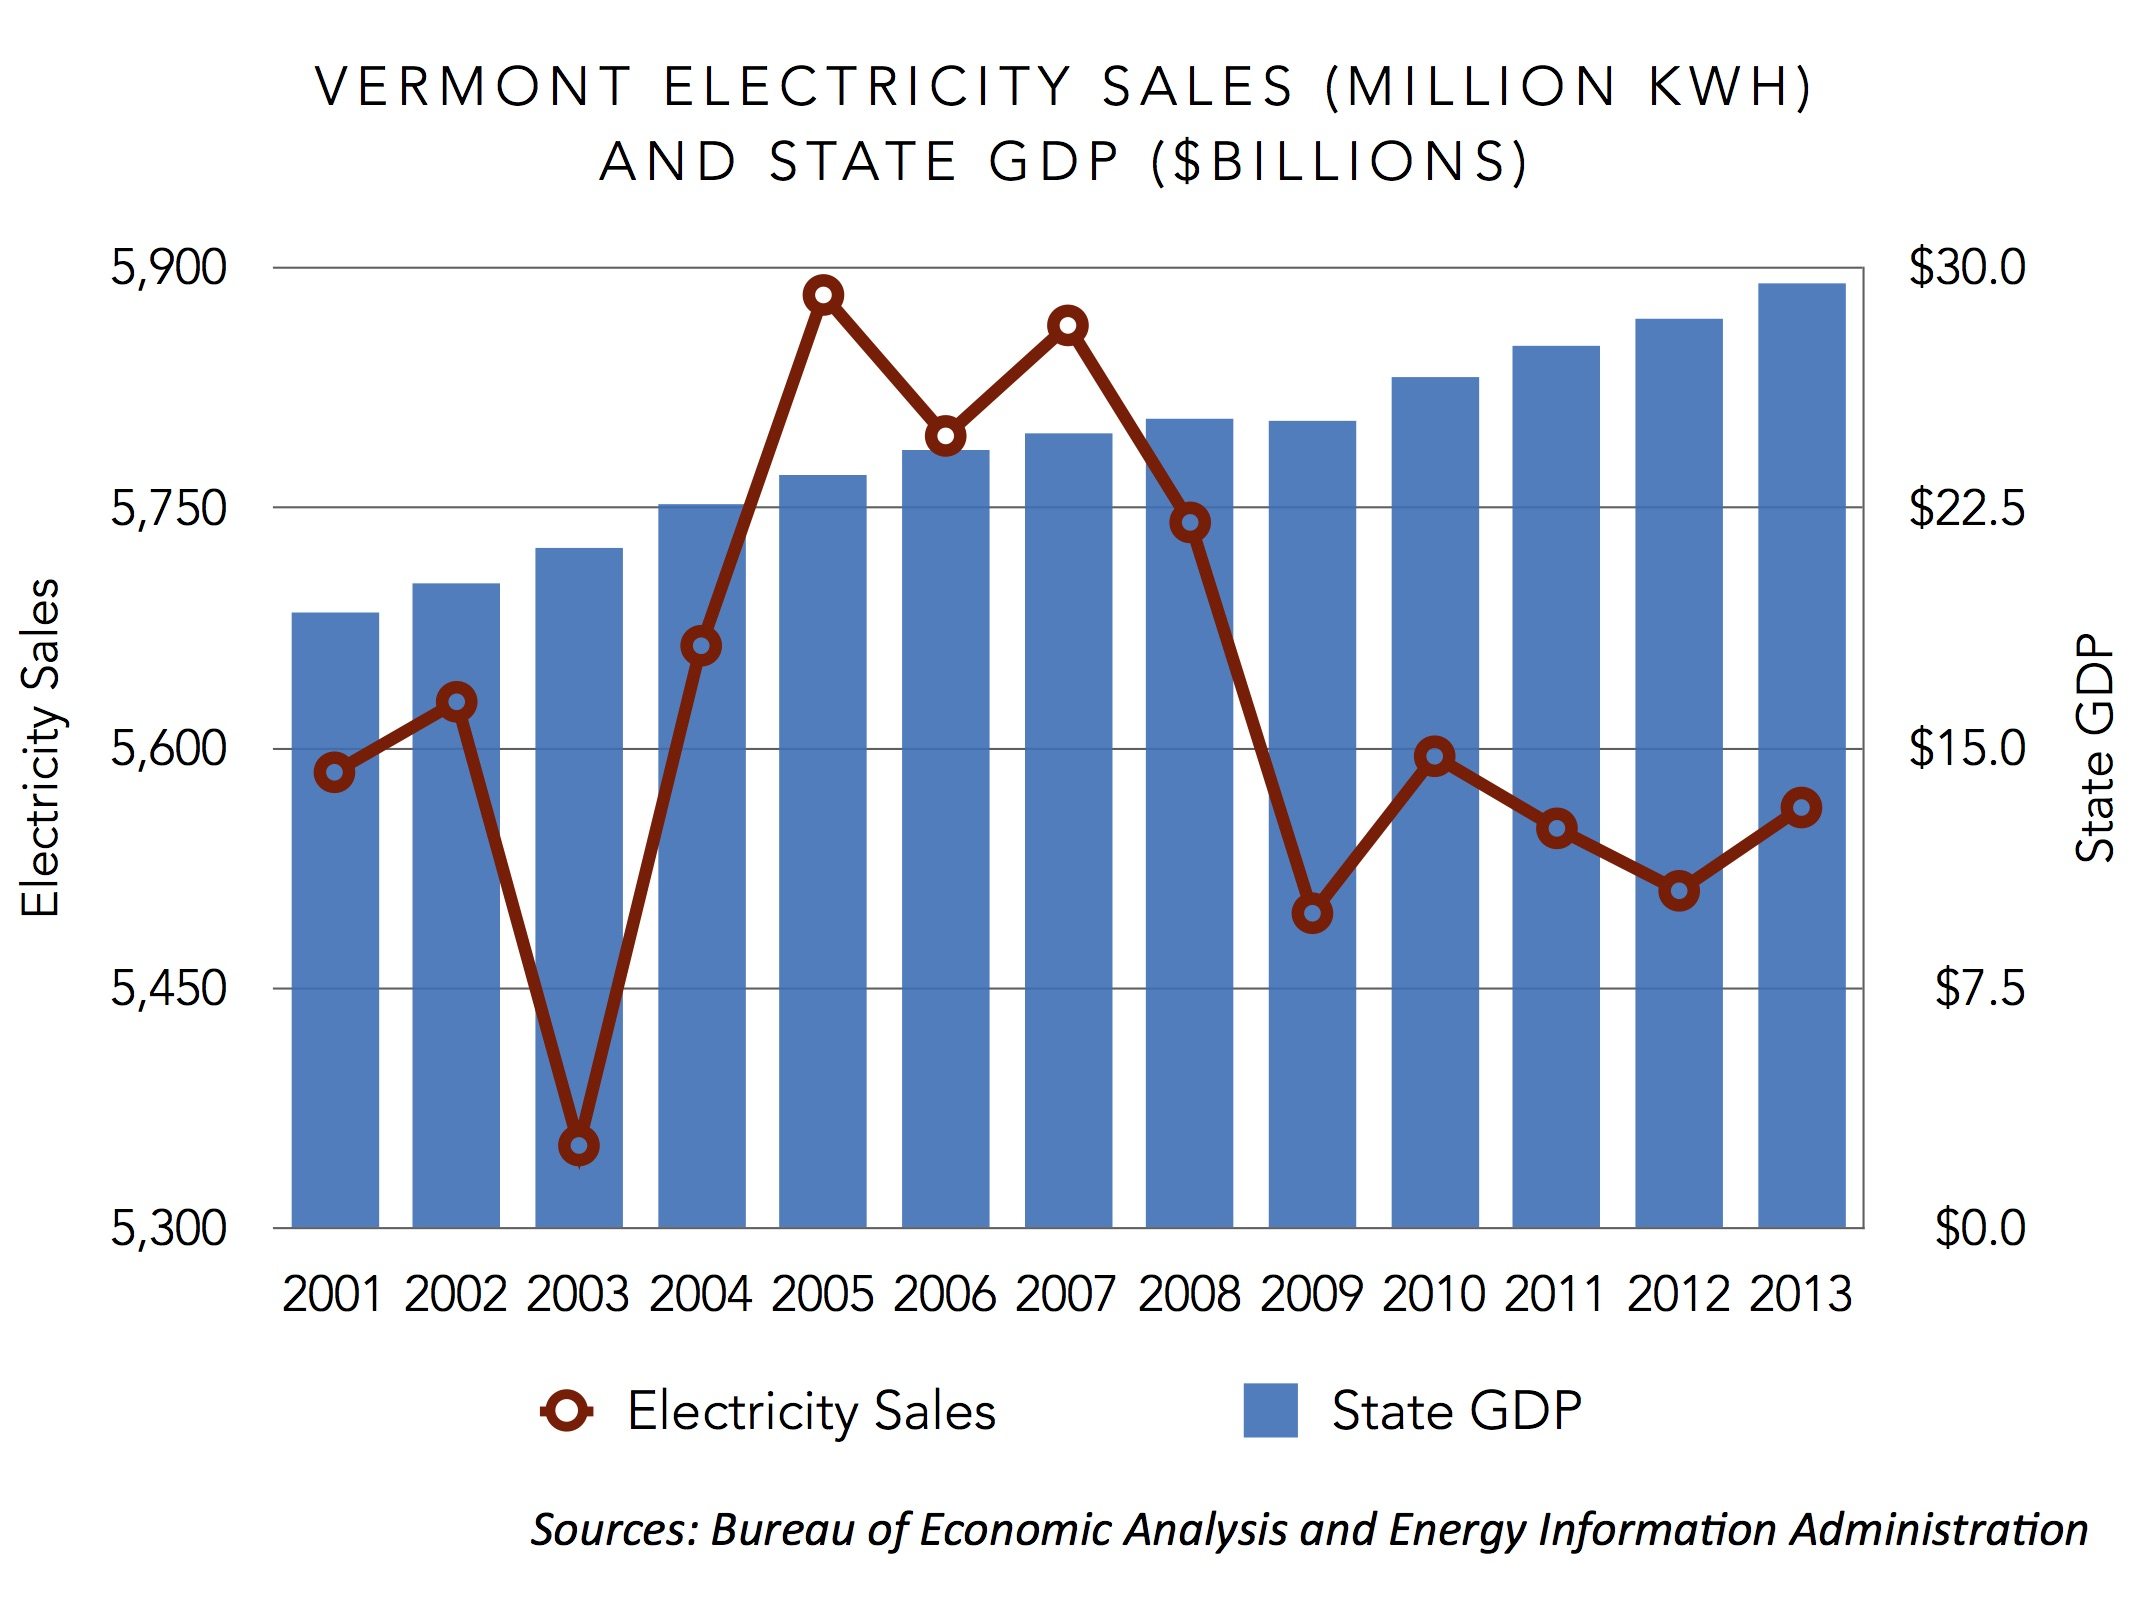 vermont electricity sales and state gdp 2001-2013